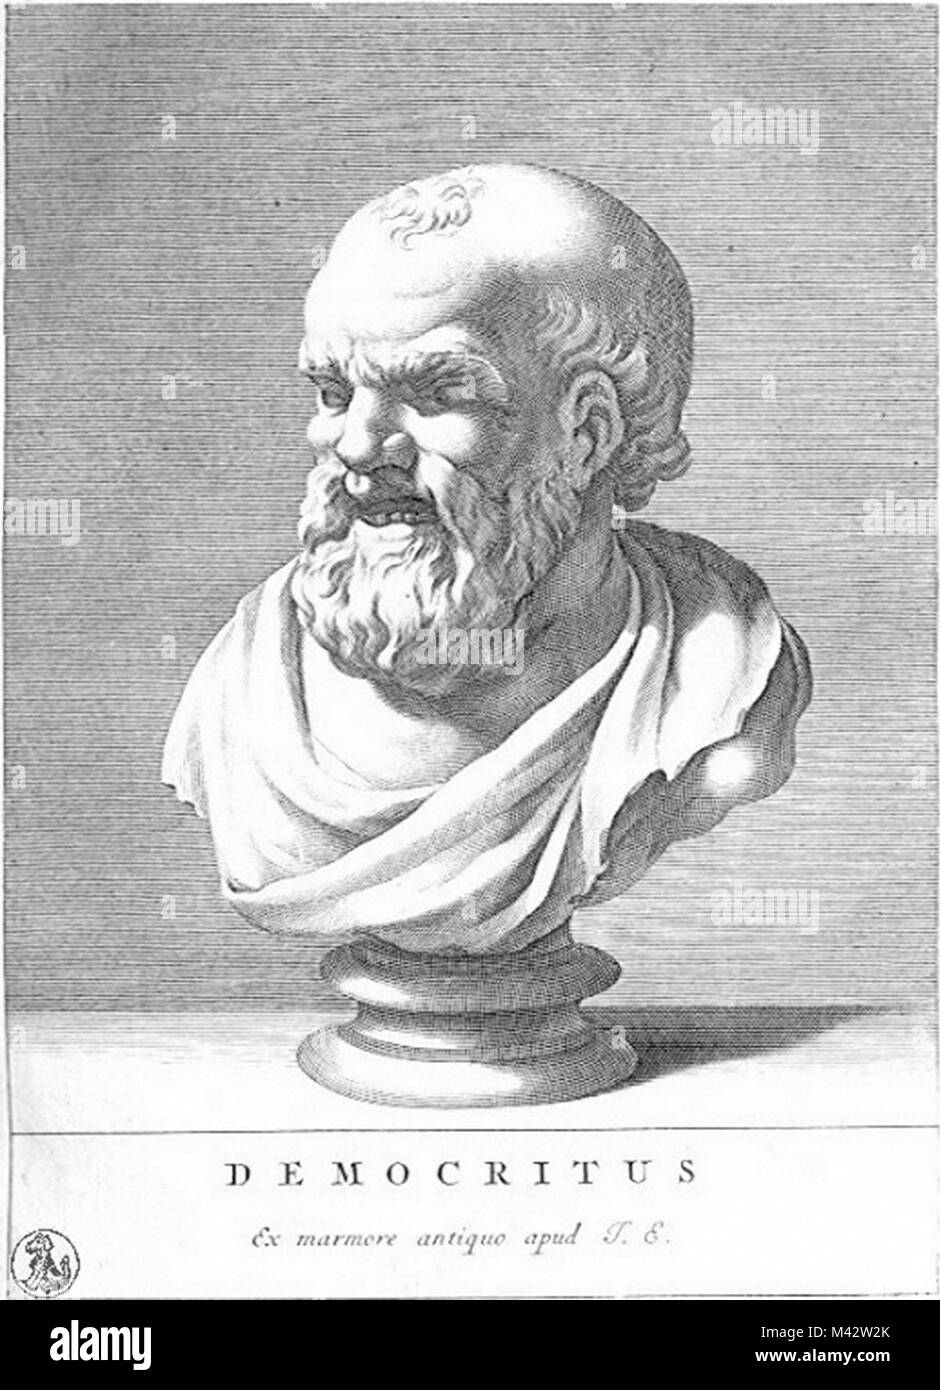 Democritus (c. 460 – c. 370 BC) Ancient Greek pre-Socratic philosopher, formulated an atomic theory of the universe - Stock Image